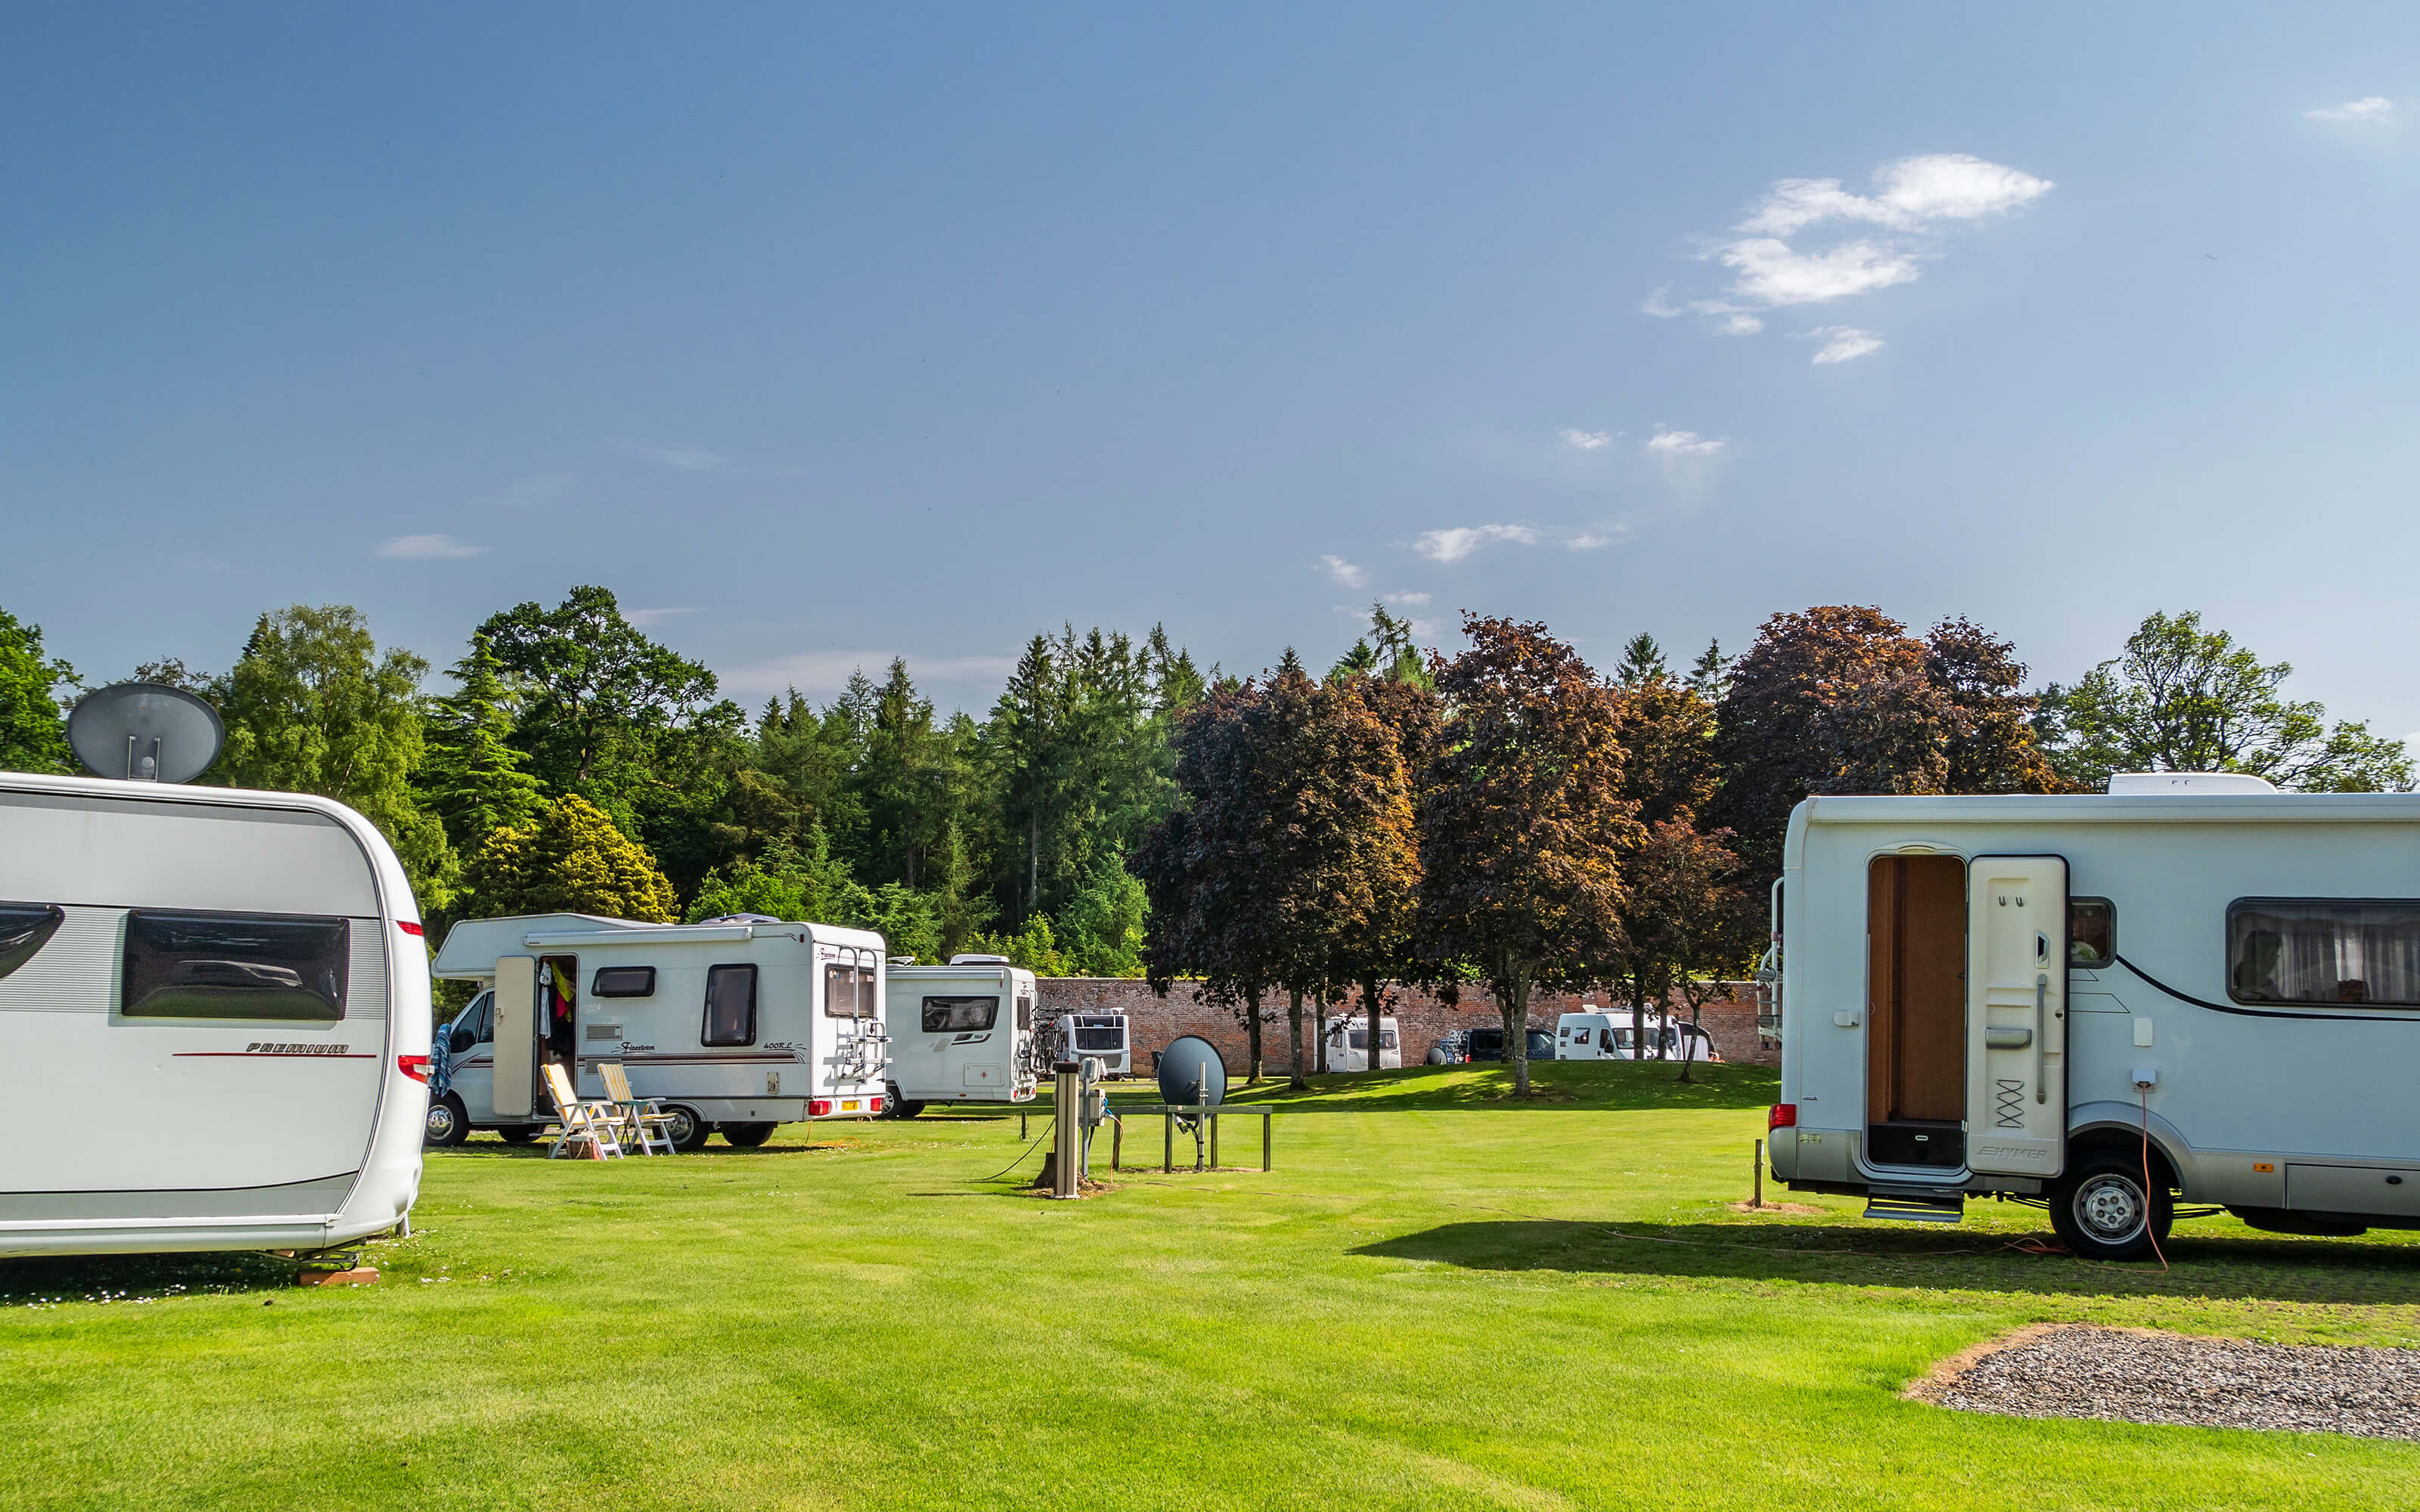 A group of motorhomes in the centre of the park.